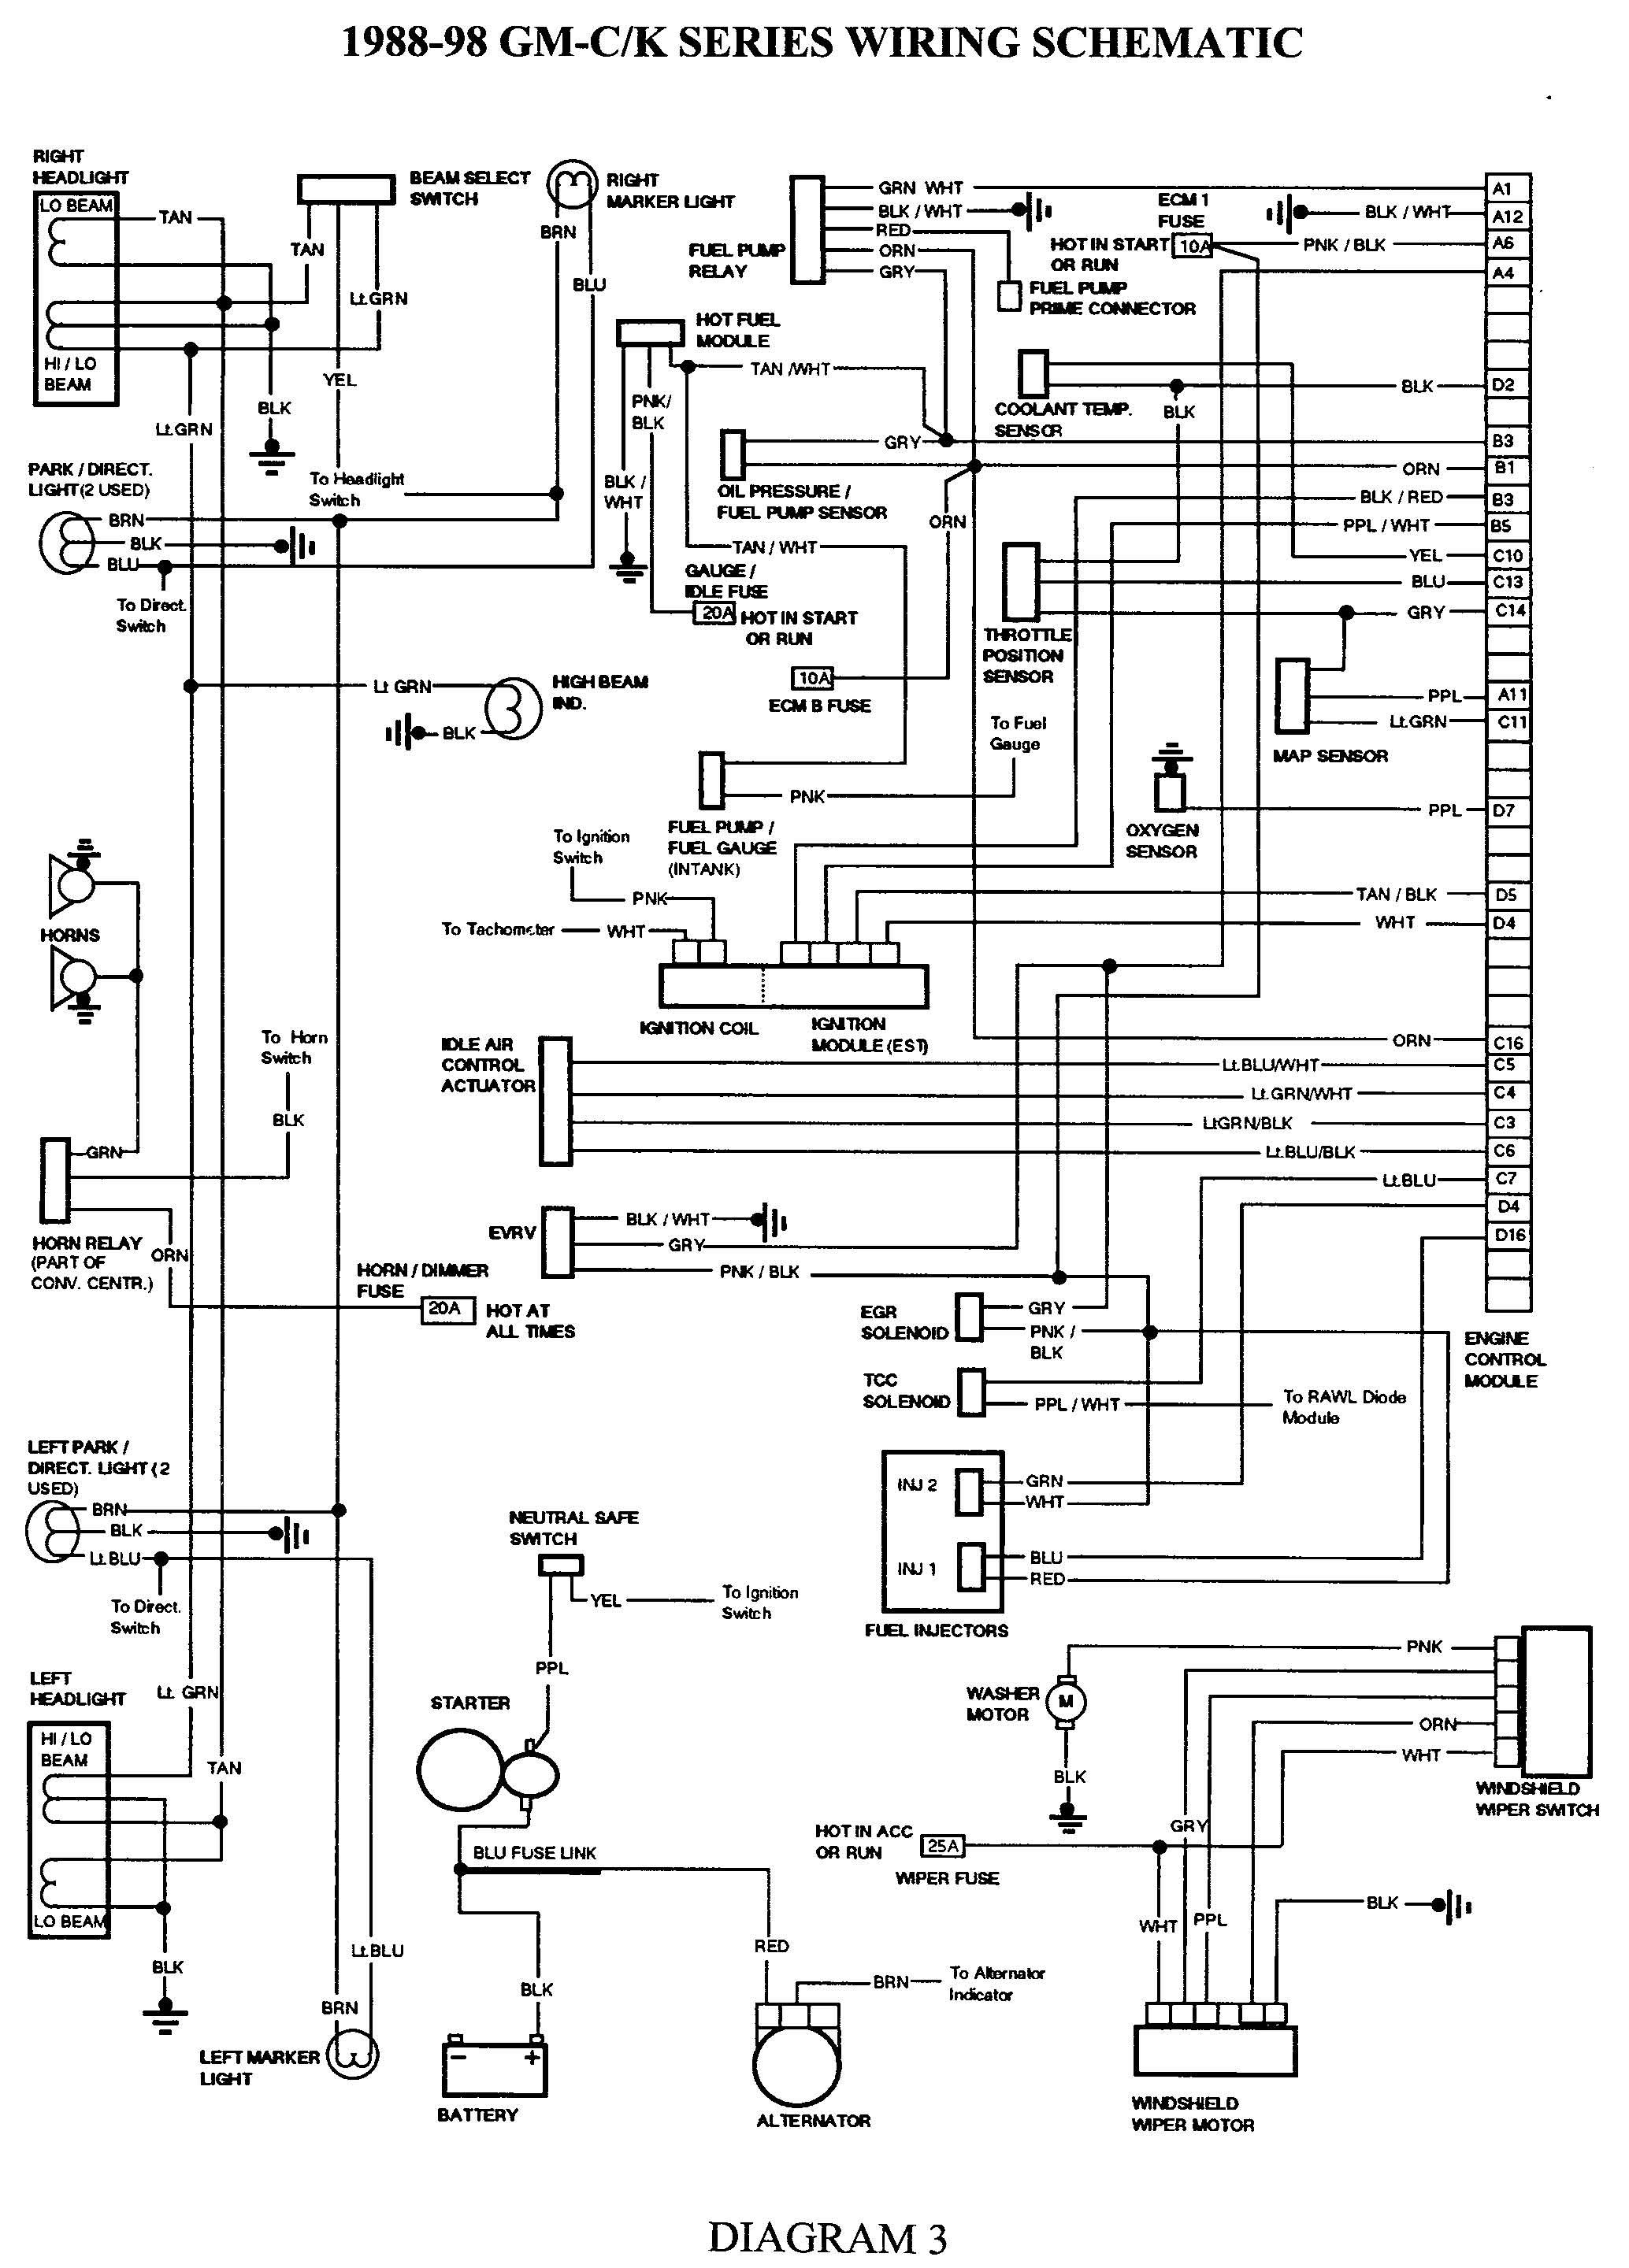 chevy electrical wiring diagrams schema wiring diagram diagram electric wiring for chevy silverado 1500 1997 [ 2068 x 2880 Pixel ]